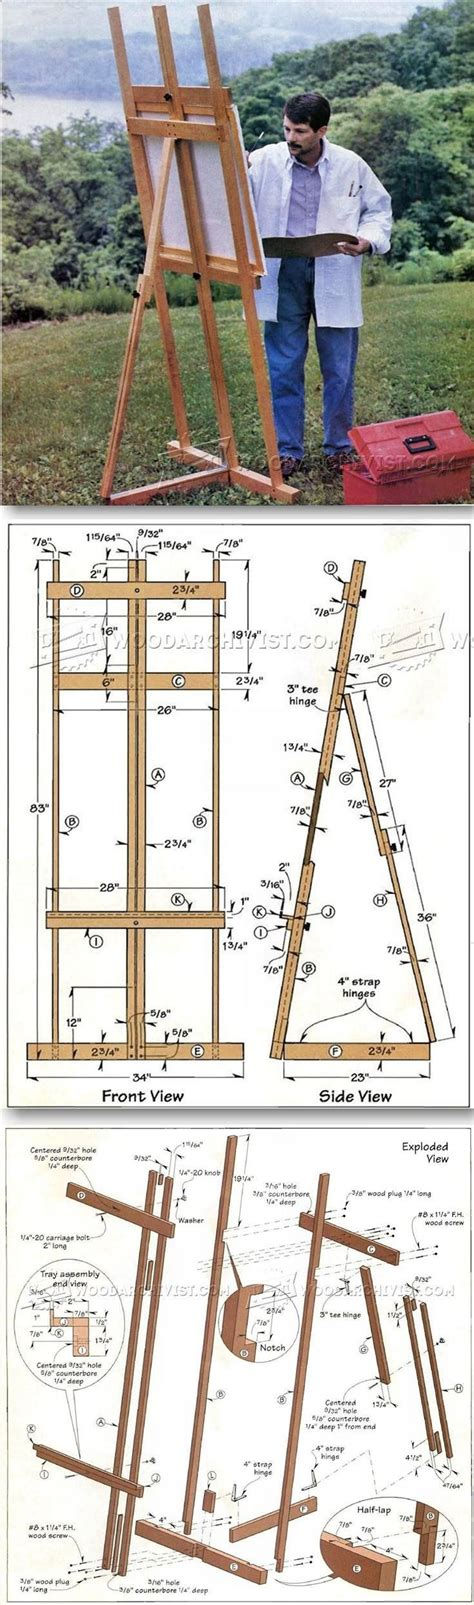 Woodworking plans for artists easel Image